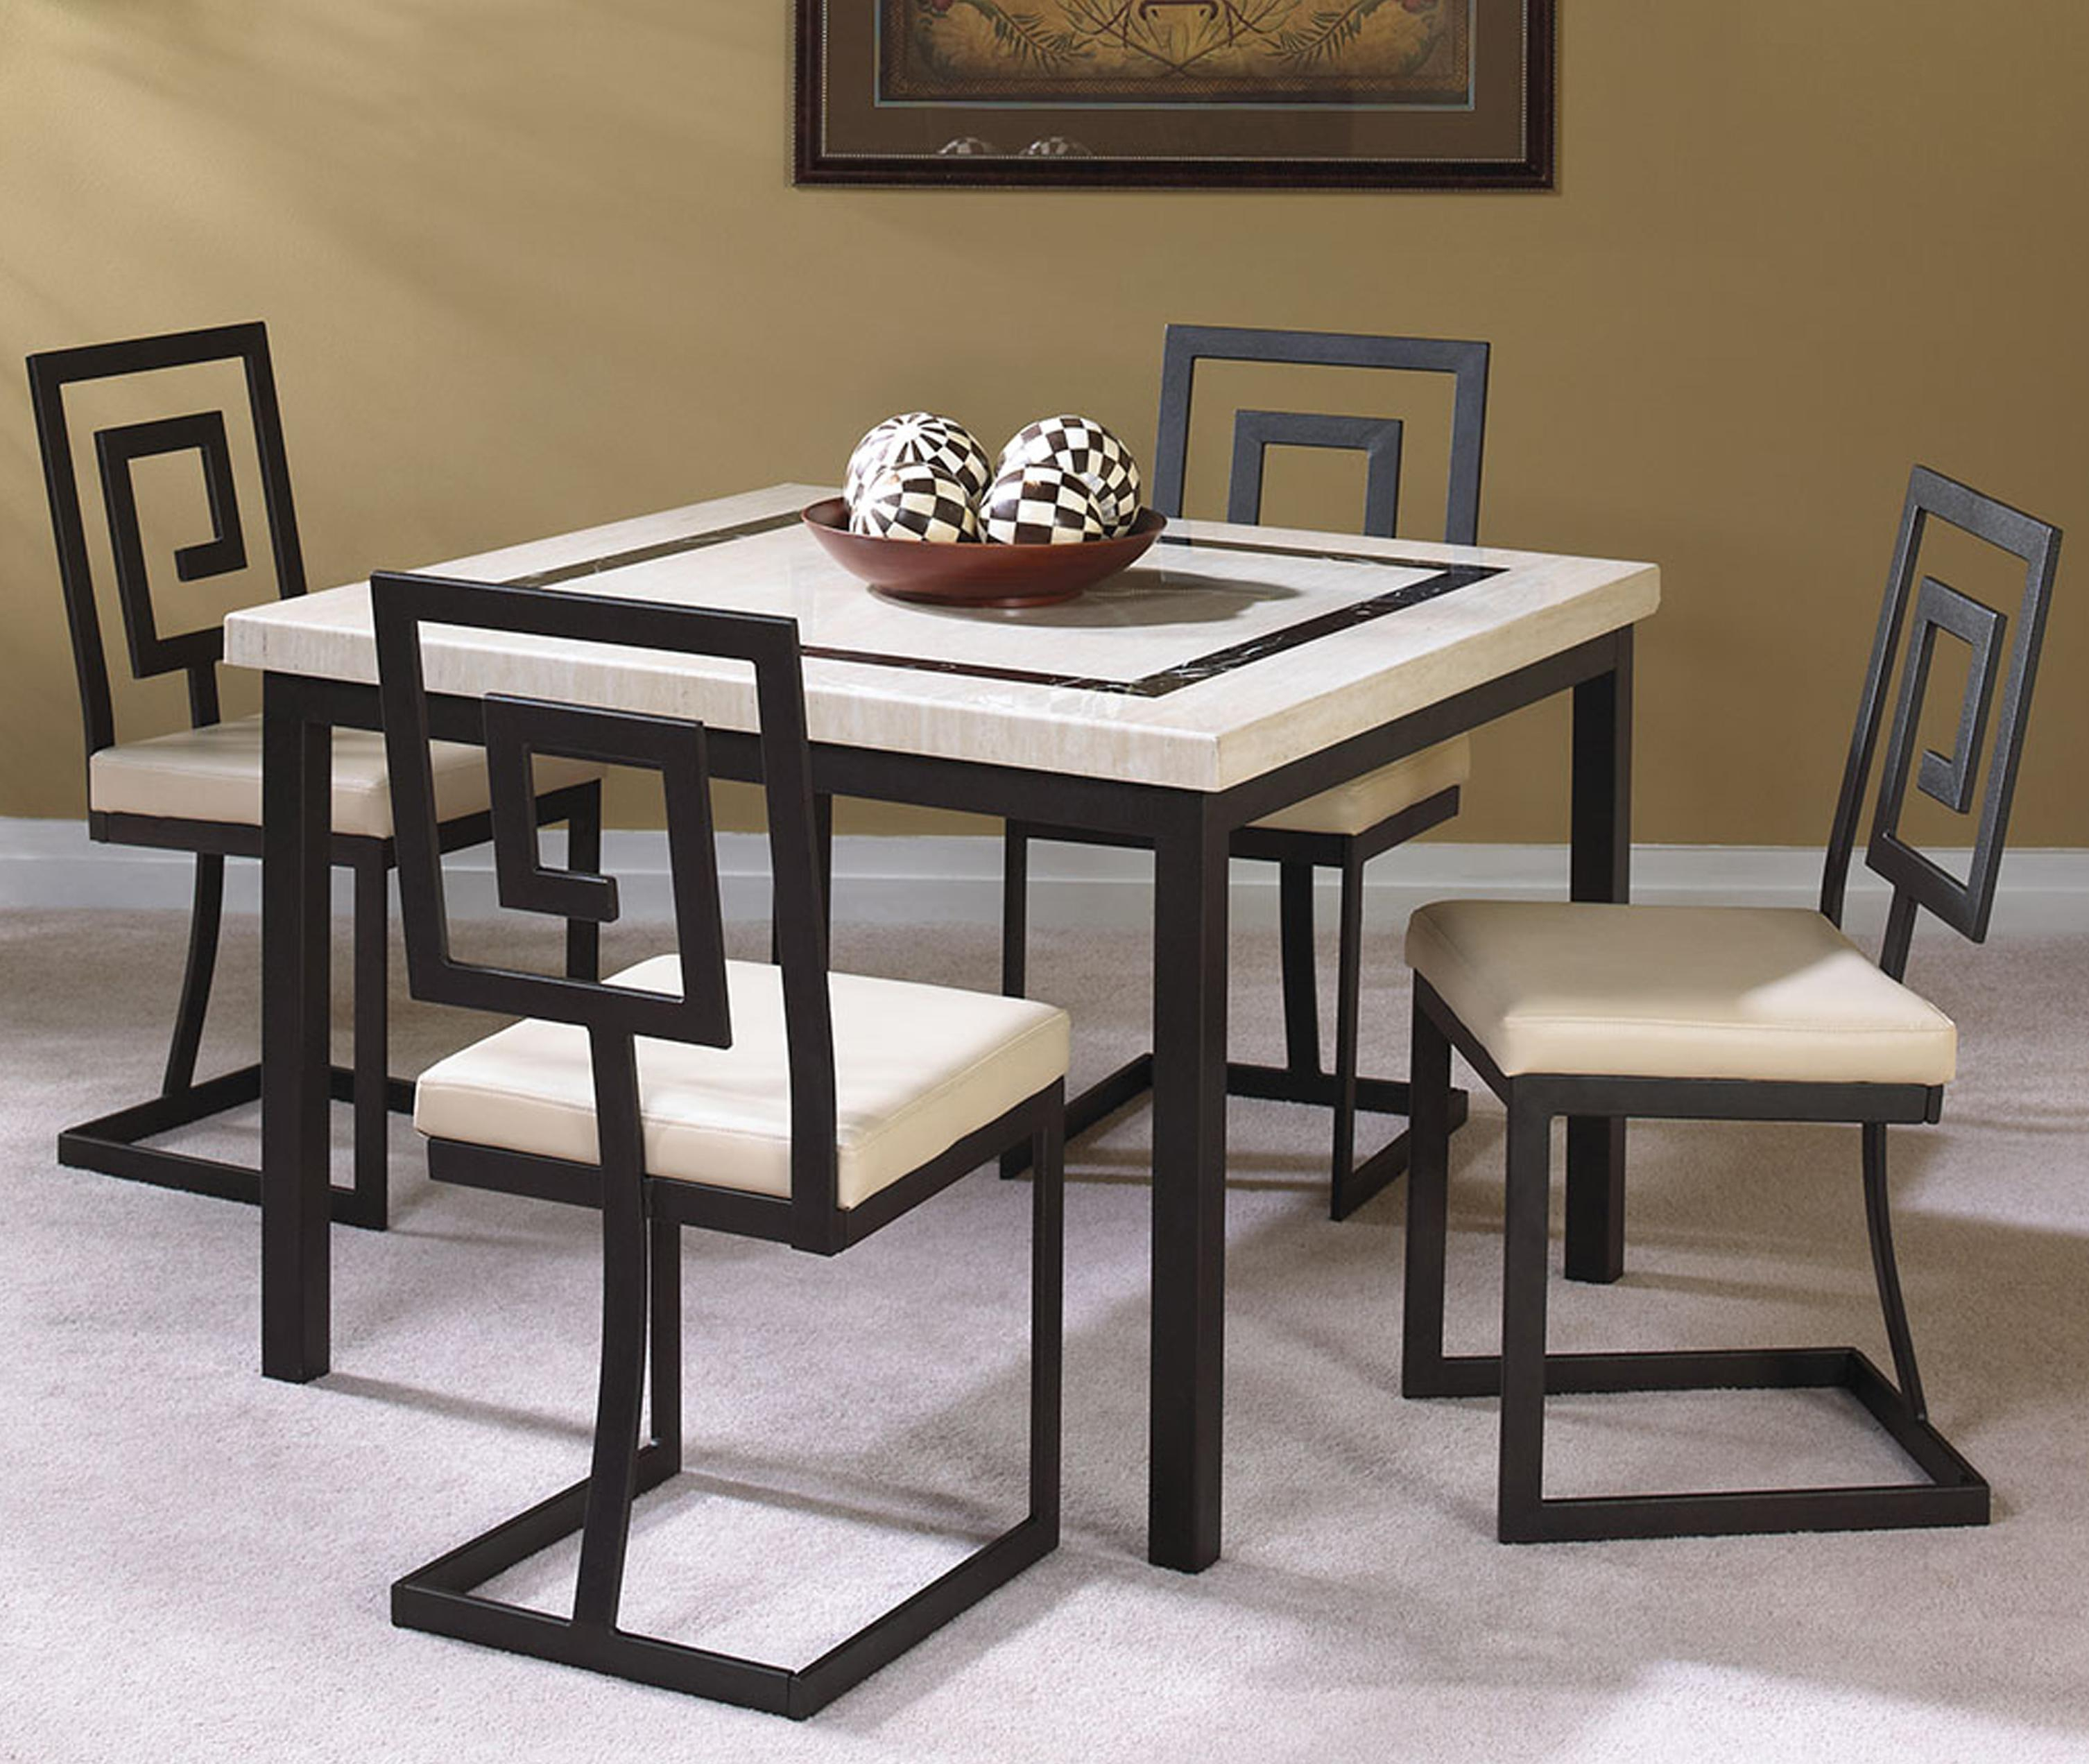 Maze 5 Piece Square Table And Side Chair Setcramco, Inc At Value City Furniture With Regard To Recent 5 Piece Dining Sets (View 9 of 20)